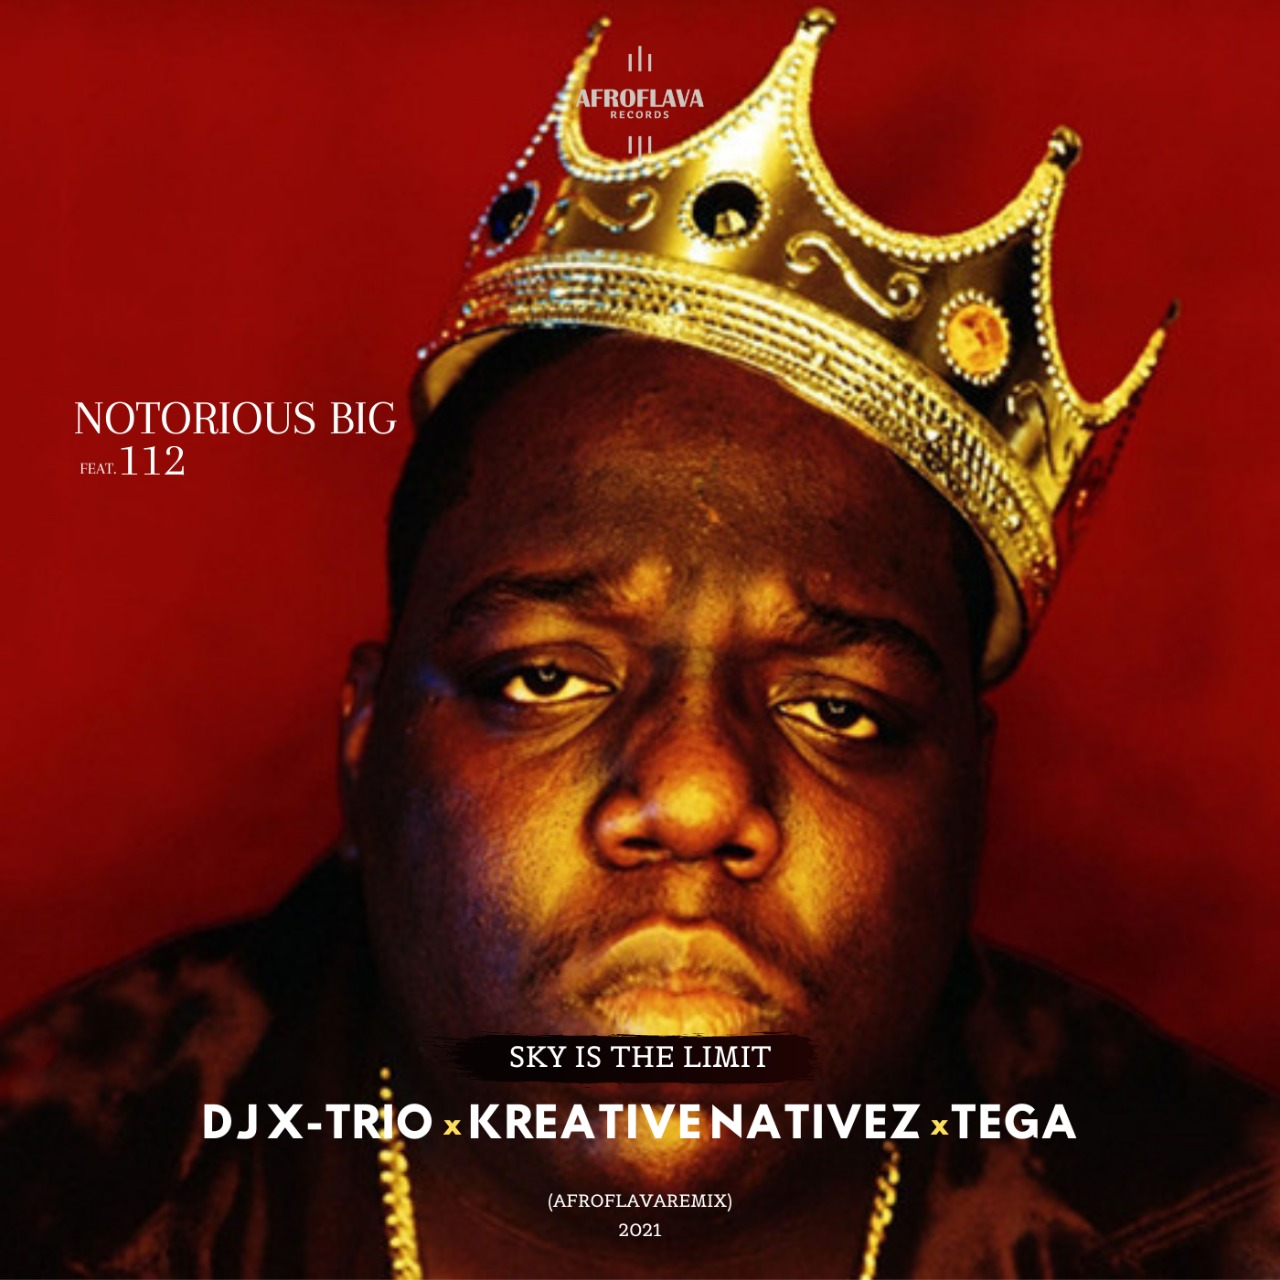 Notorious B.I.G Feat 112 – Sky Is The Limit (Dj X-Trio, Kreative Nativez & Tega Afroflava Remix)